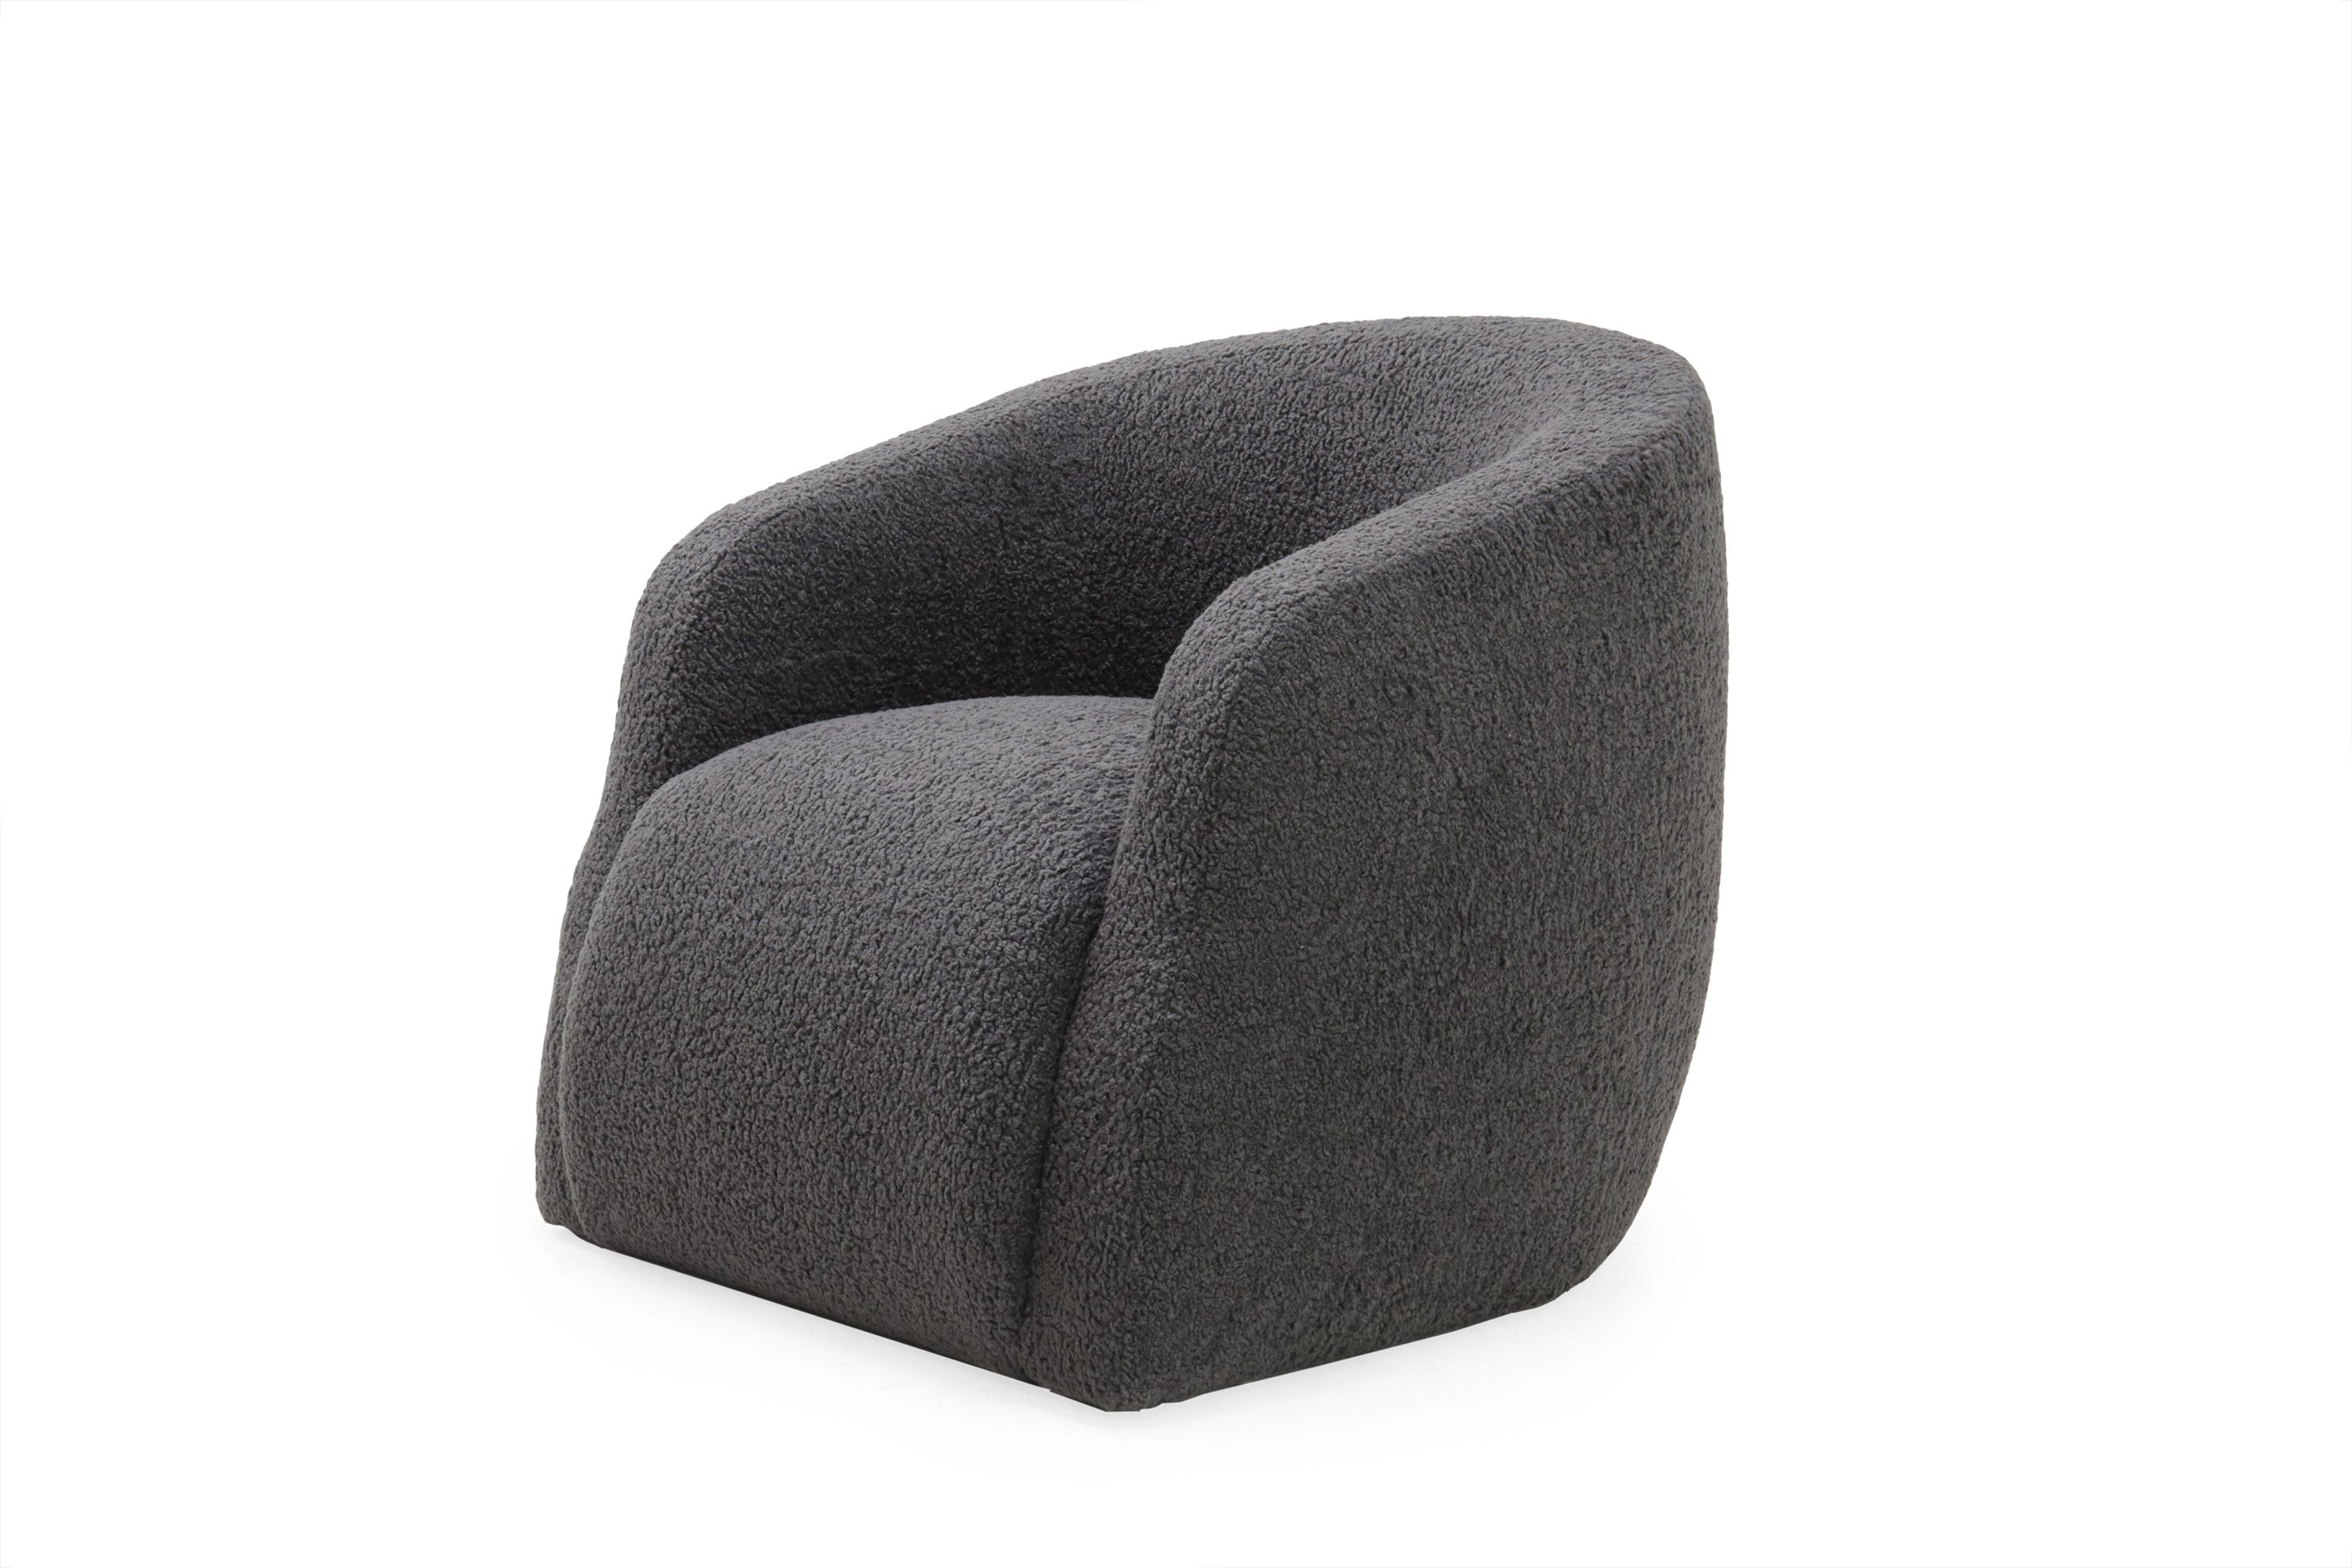 Verellen Theo Swivel Club Chair In Aires Charcoal | Fall 2017 Market In Charcoal Swivel Chairs (View 20 of 25)